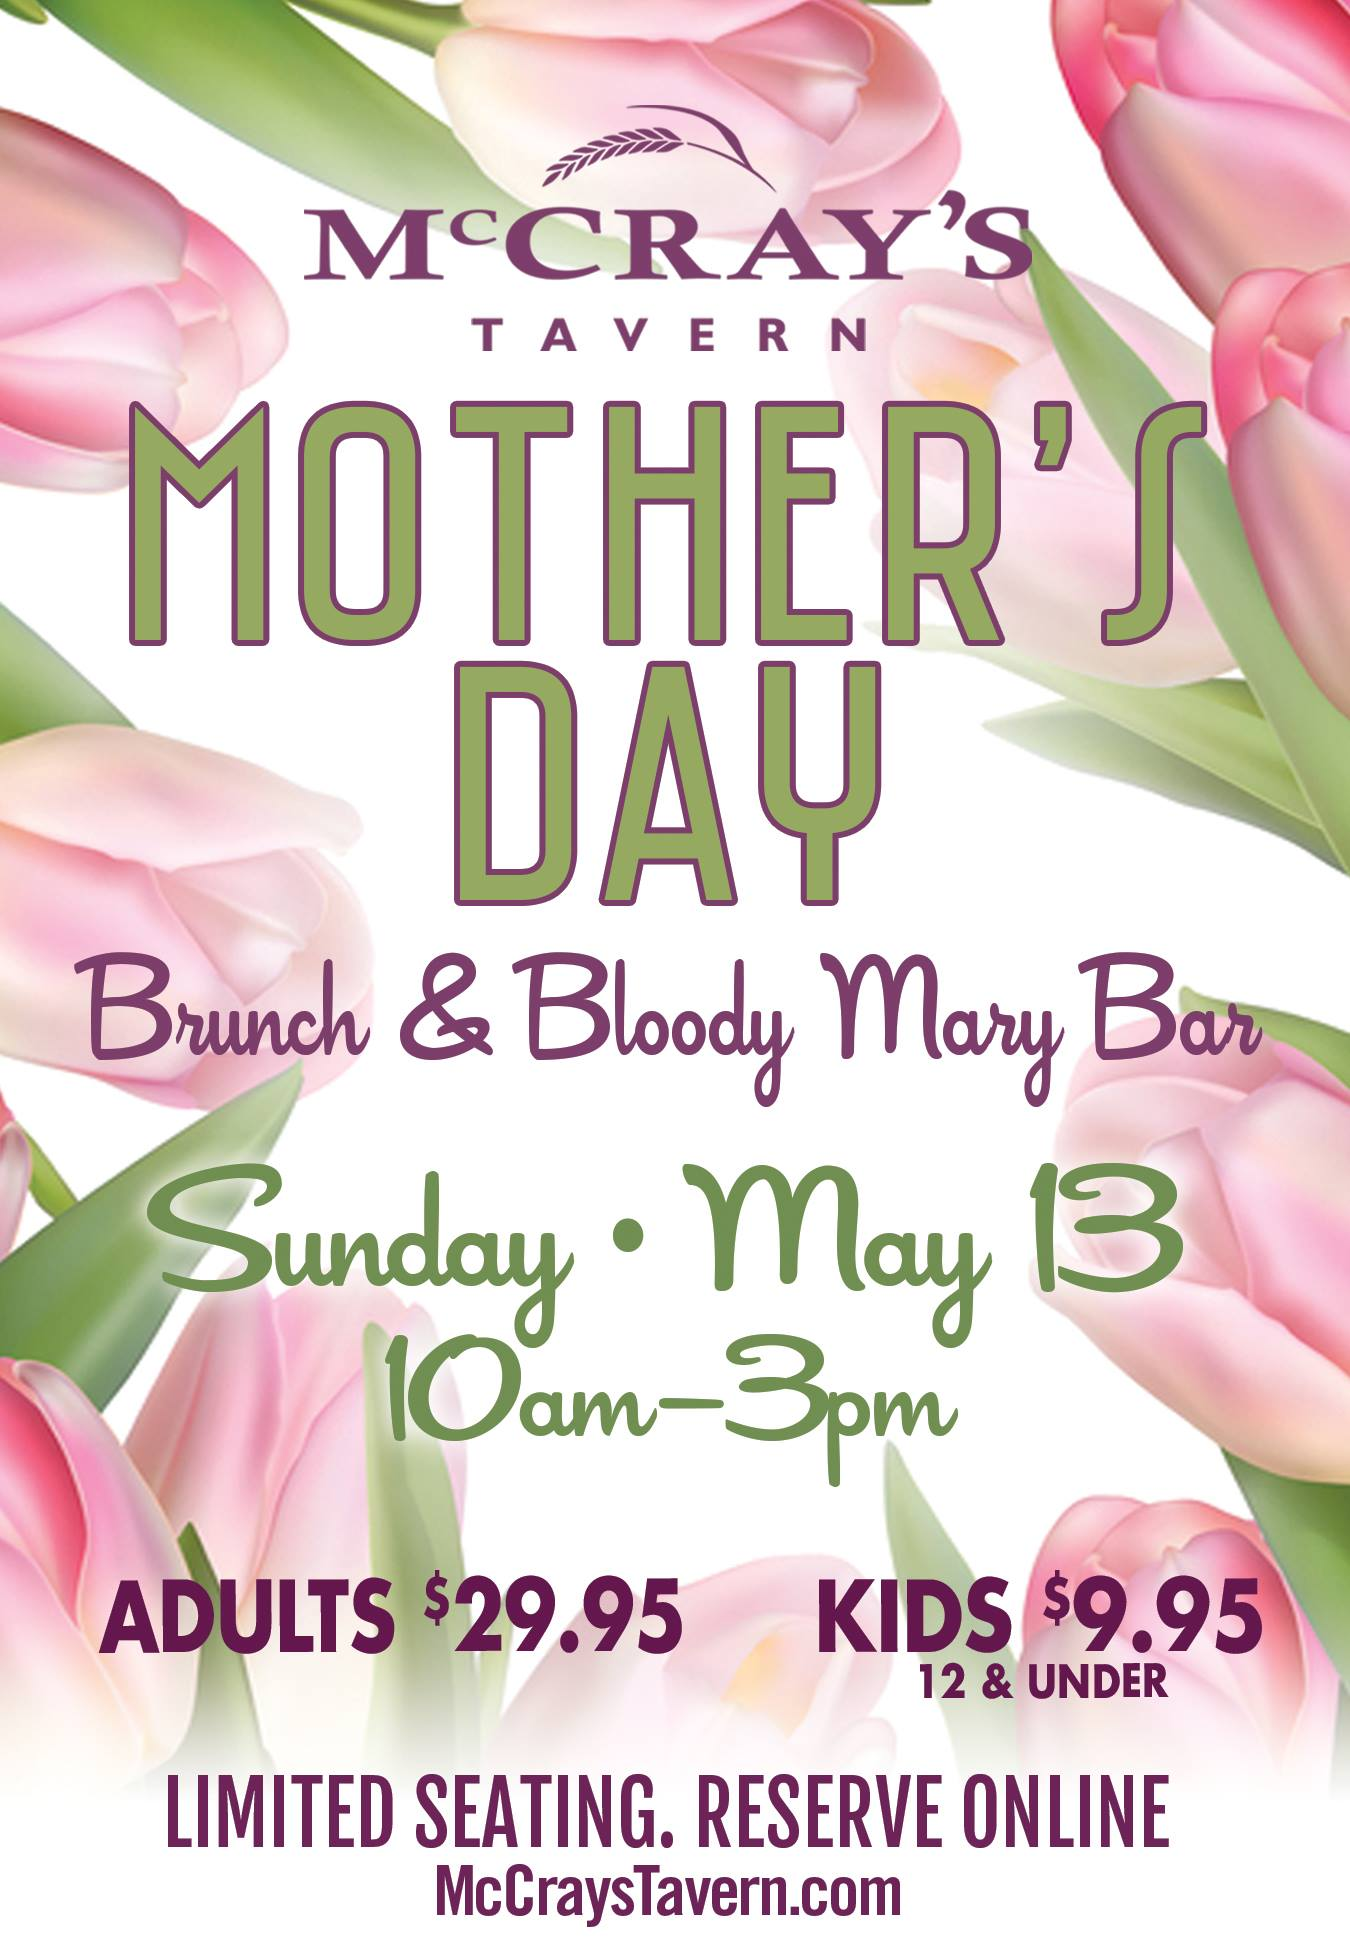 Taverns in Smyrna | Vinings Bar & Grill | Sunday Brunch Menu